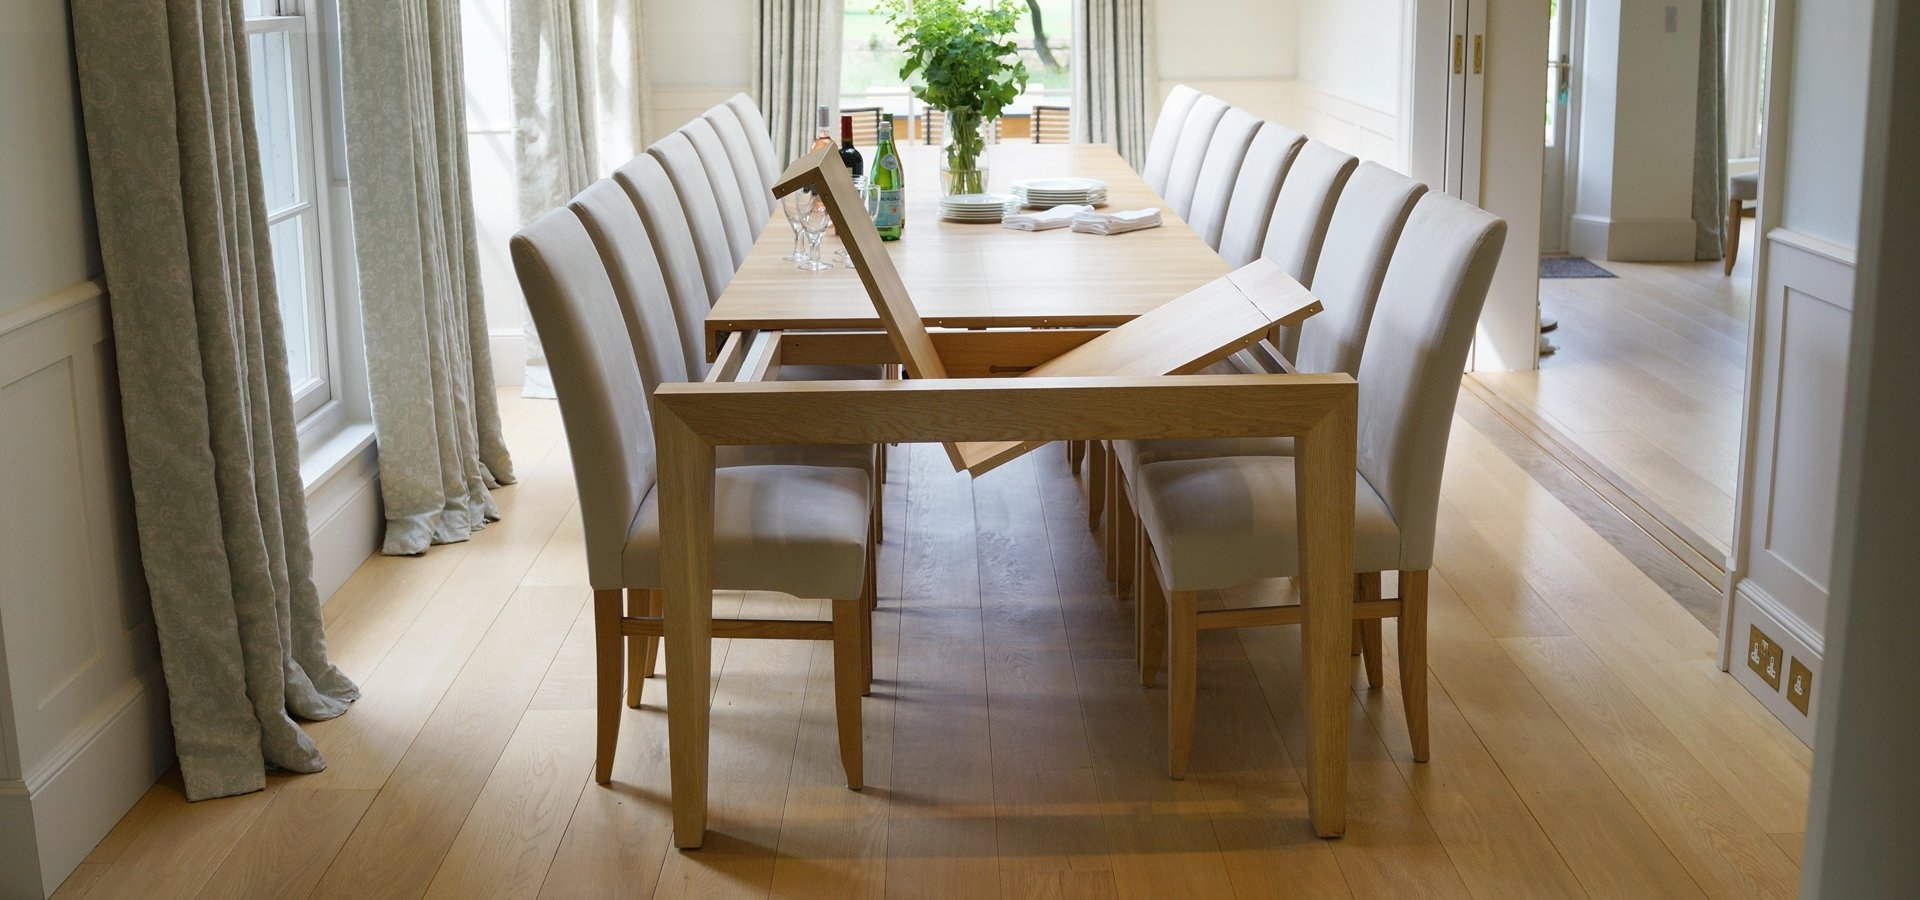 Extendable Oak Dining Tables And Chairs Regarding Current Contemporary Dining Tables & Furnitureberrydesign (View 7 of 25)